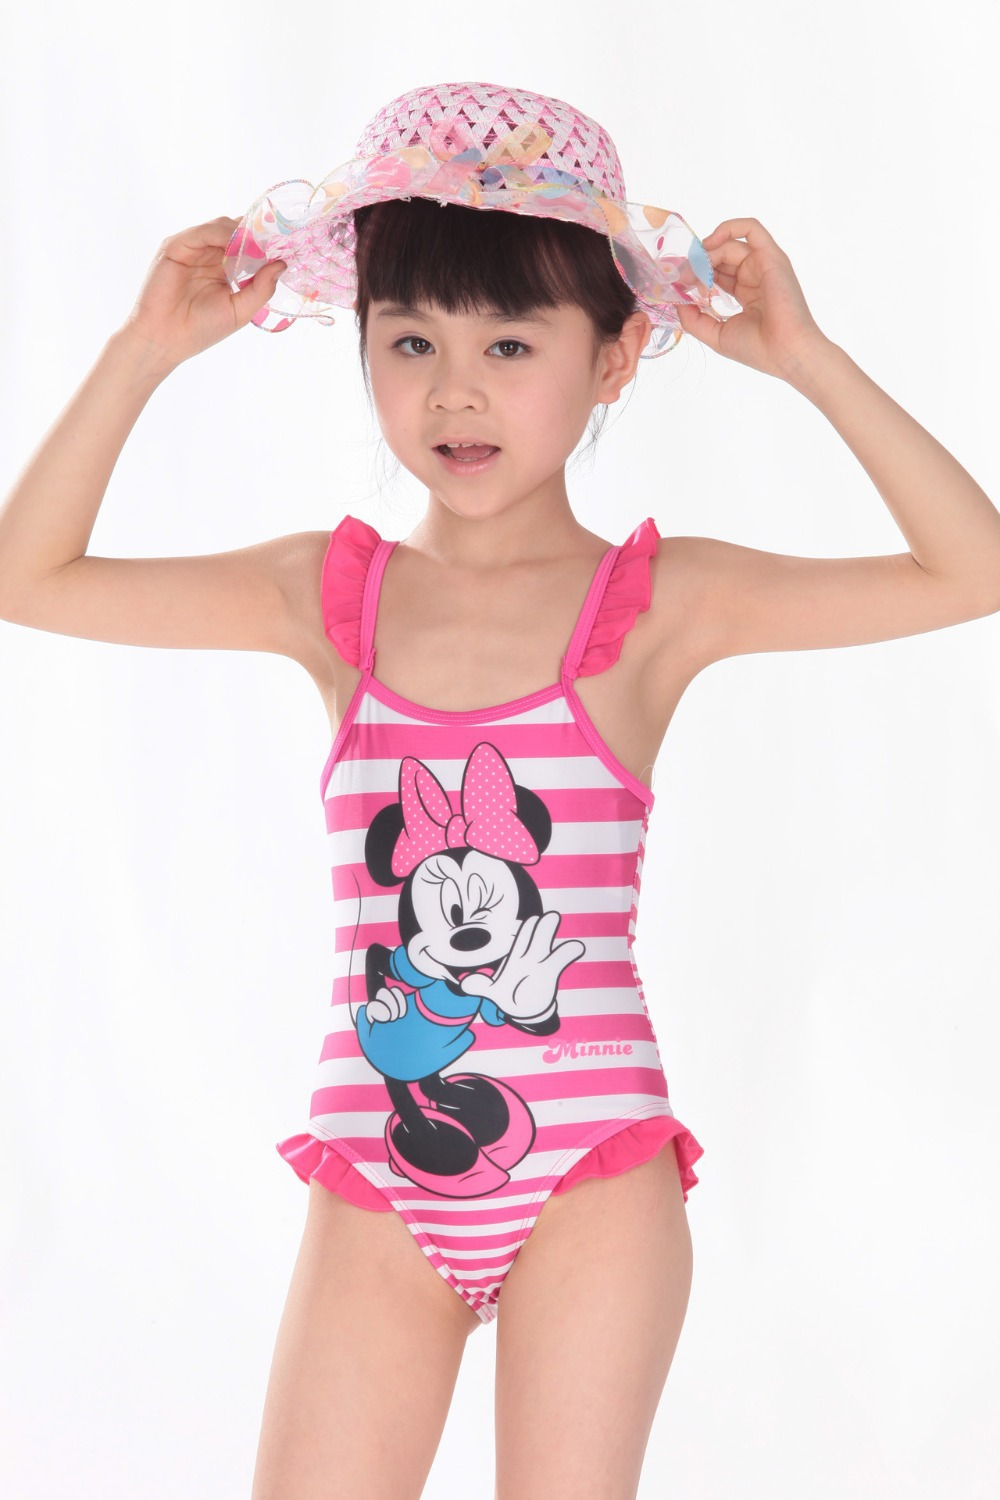 baby girl - swimwear - one-piece ruffle swimsuit (Tae needs a new suit, trying to narrow down the choices) Find this Pin and more on Children's Swimwear by TruKid: All Natural Skin Care for Kids. Check out The Children's Place for a great selection of kids clothes, baby clothes & more.